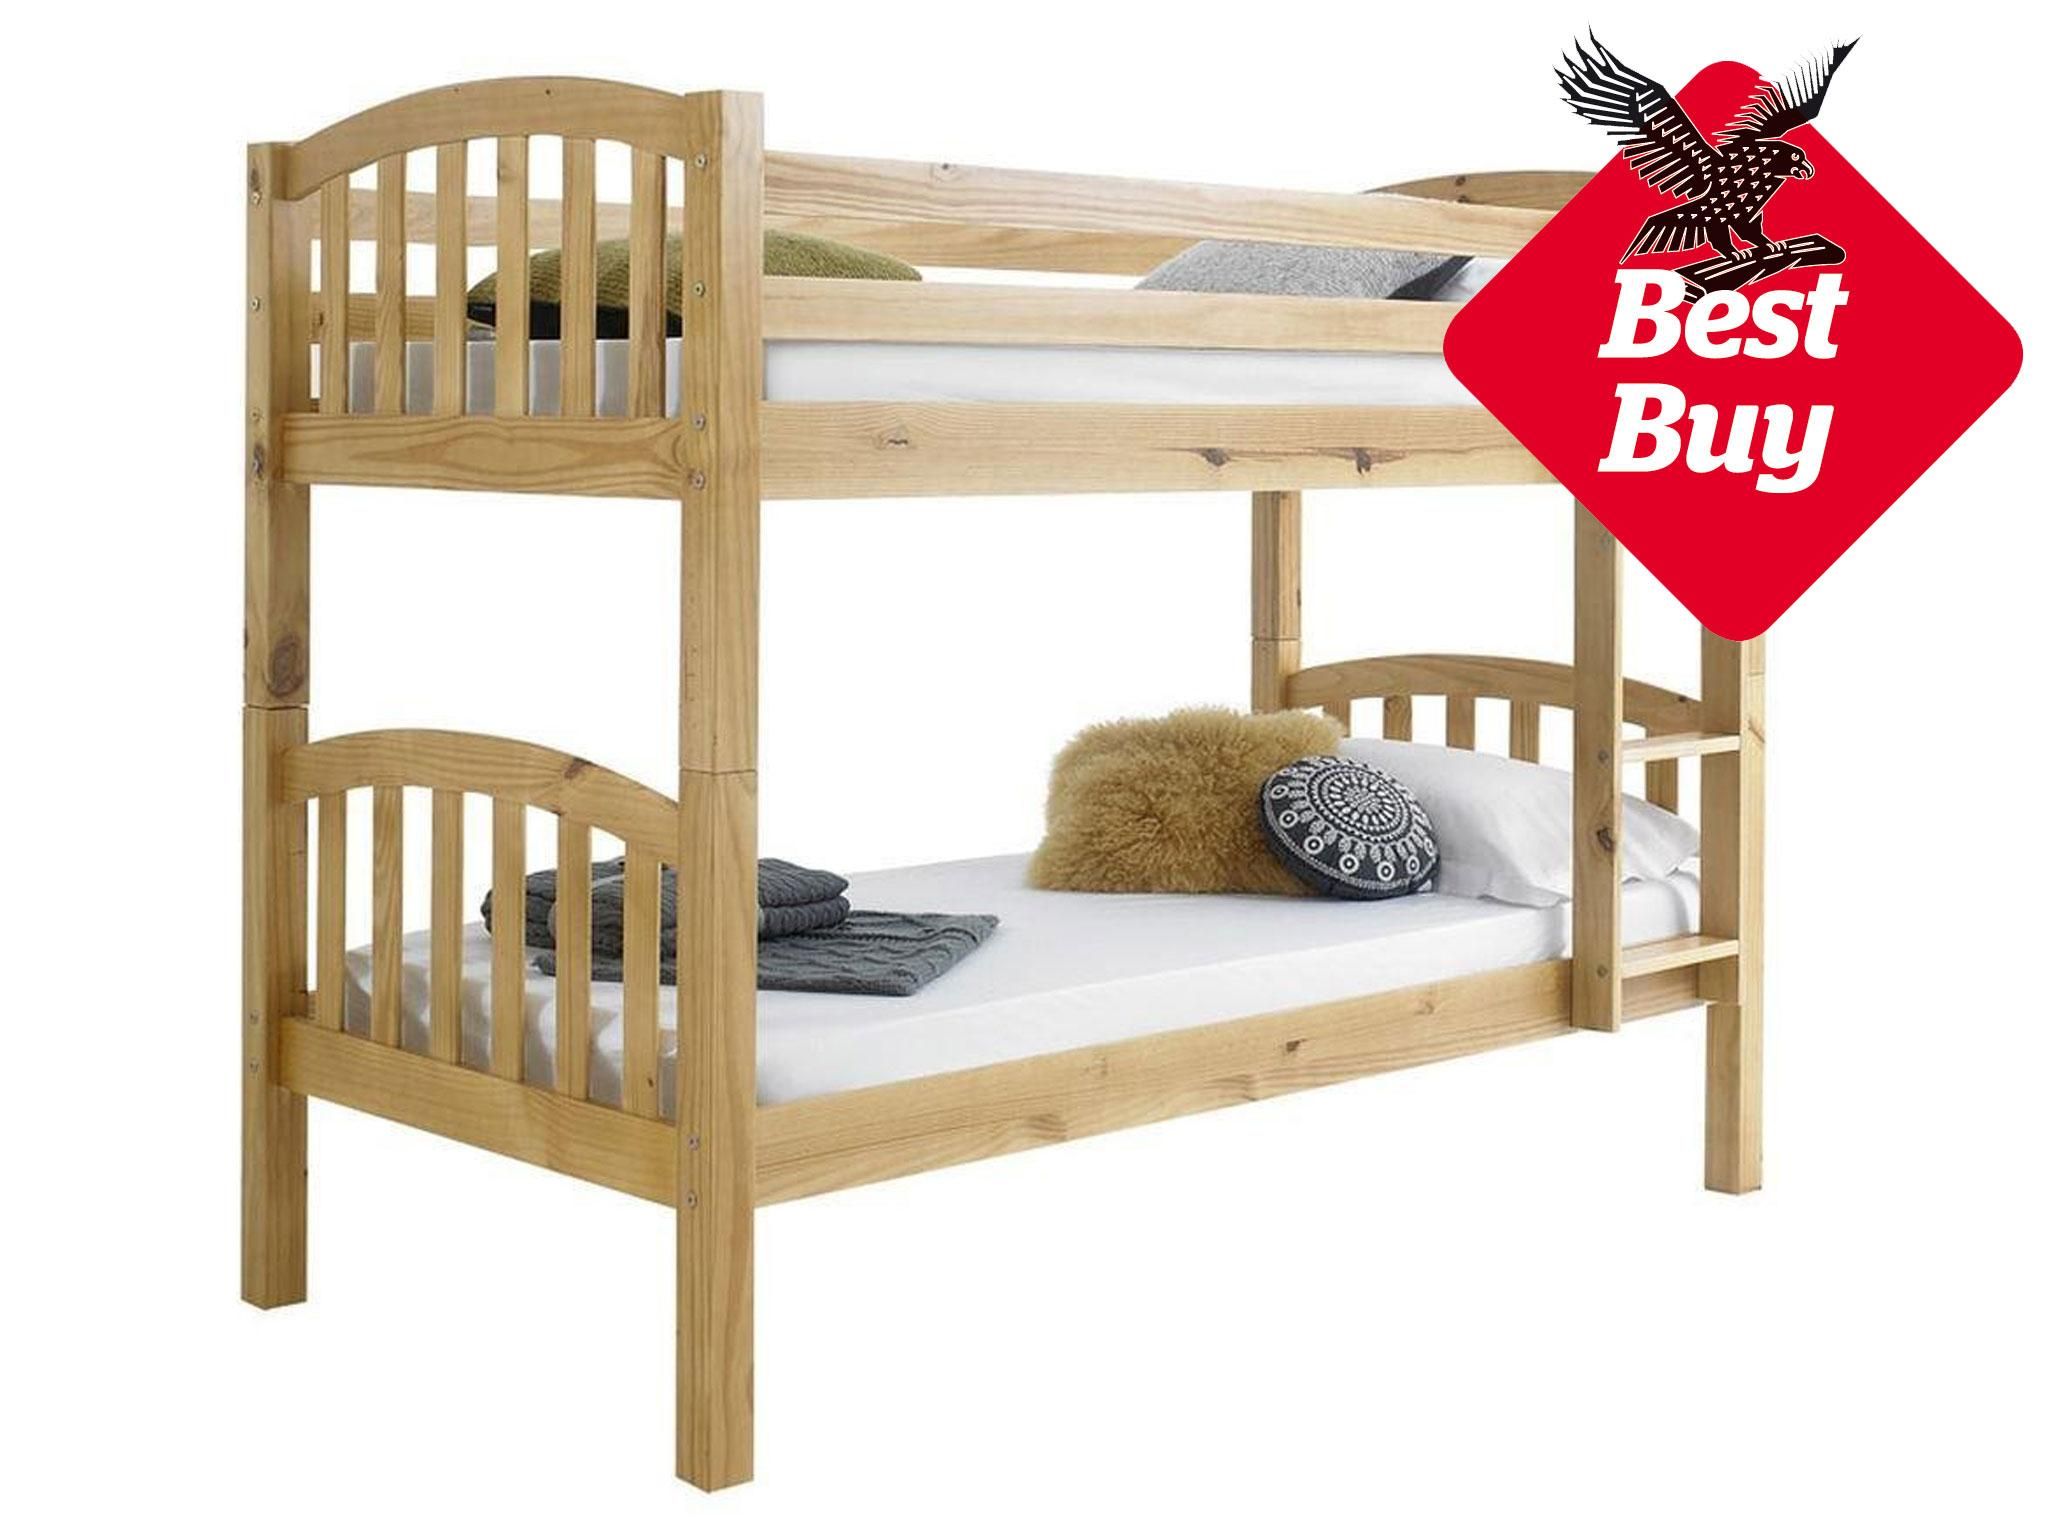 Elegant Happy Beds American Wood Bunk Bed: £199.99, Happy Beds